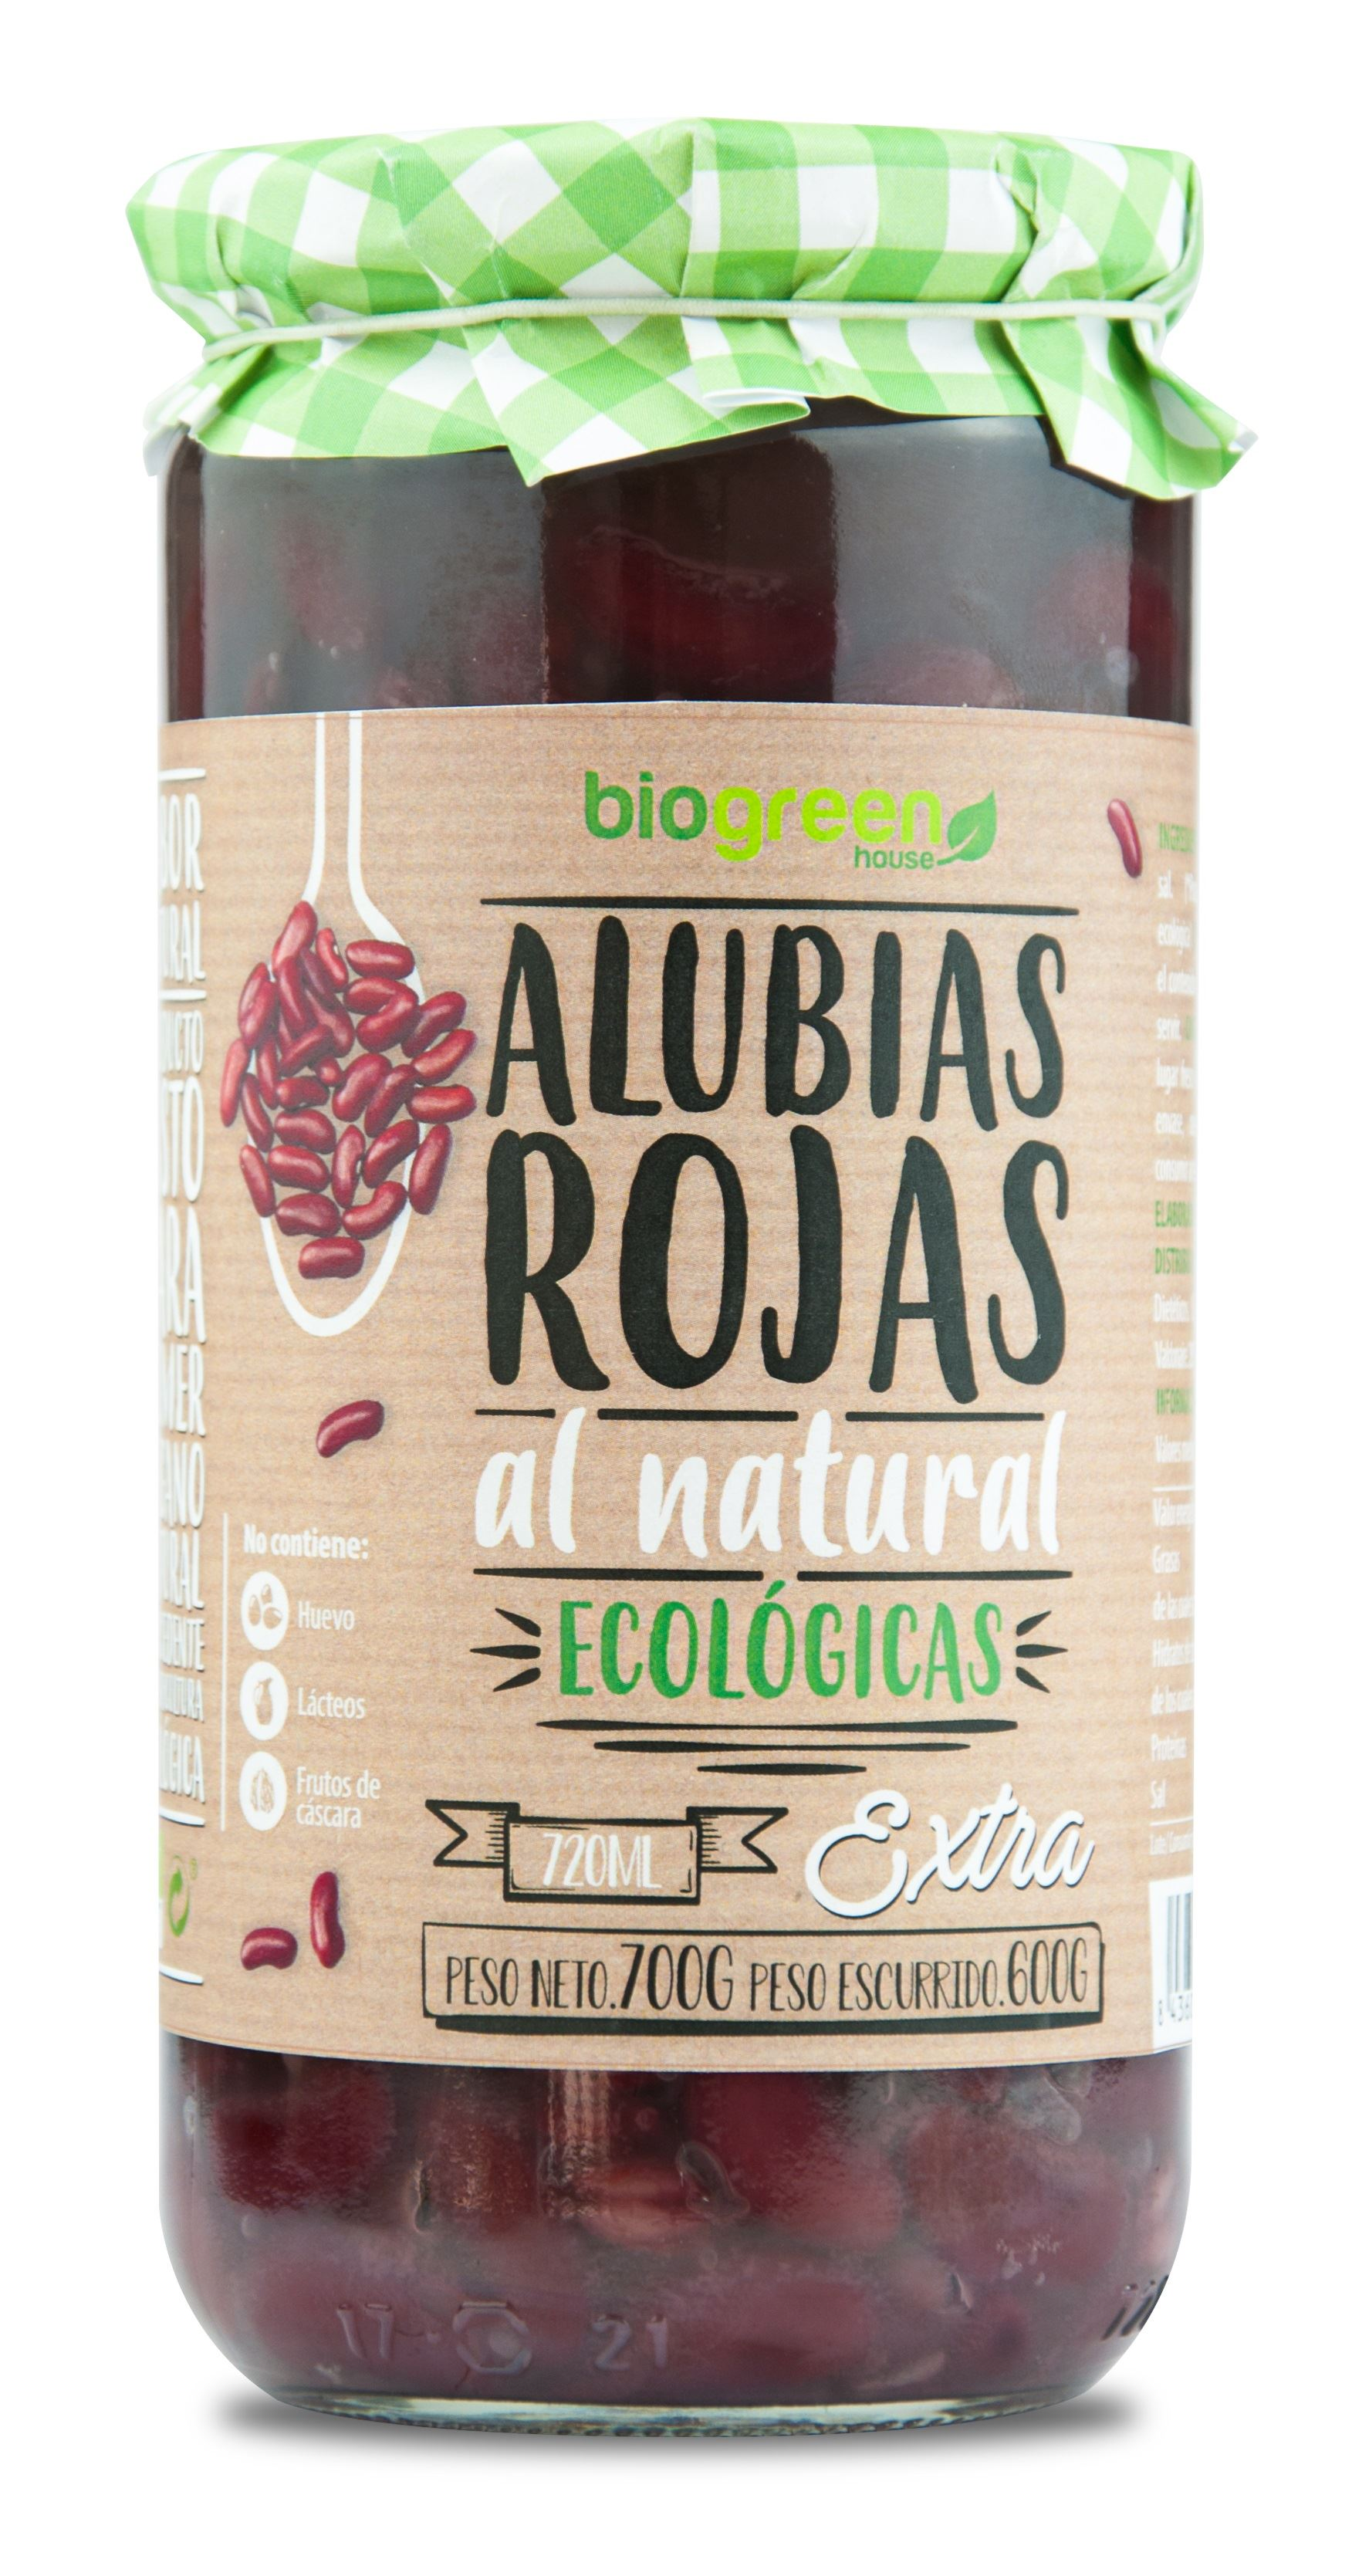 ALUBIAS ROJAS 720 ml. BIOGREEN